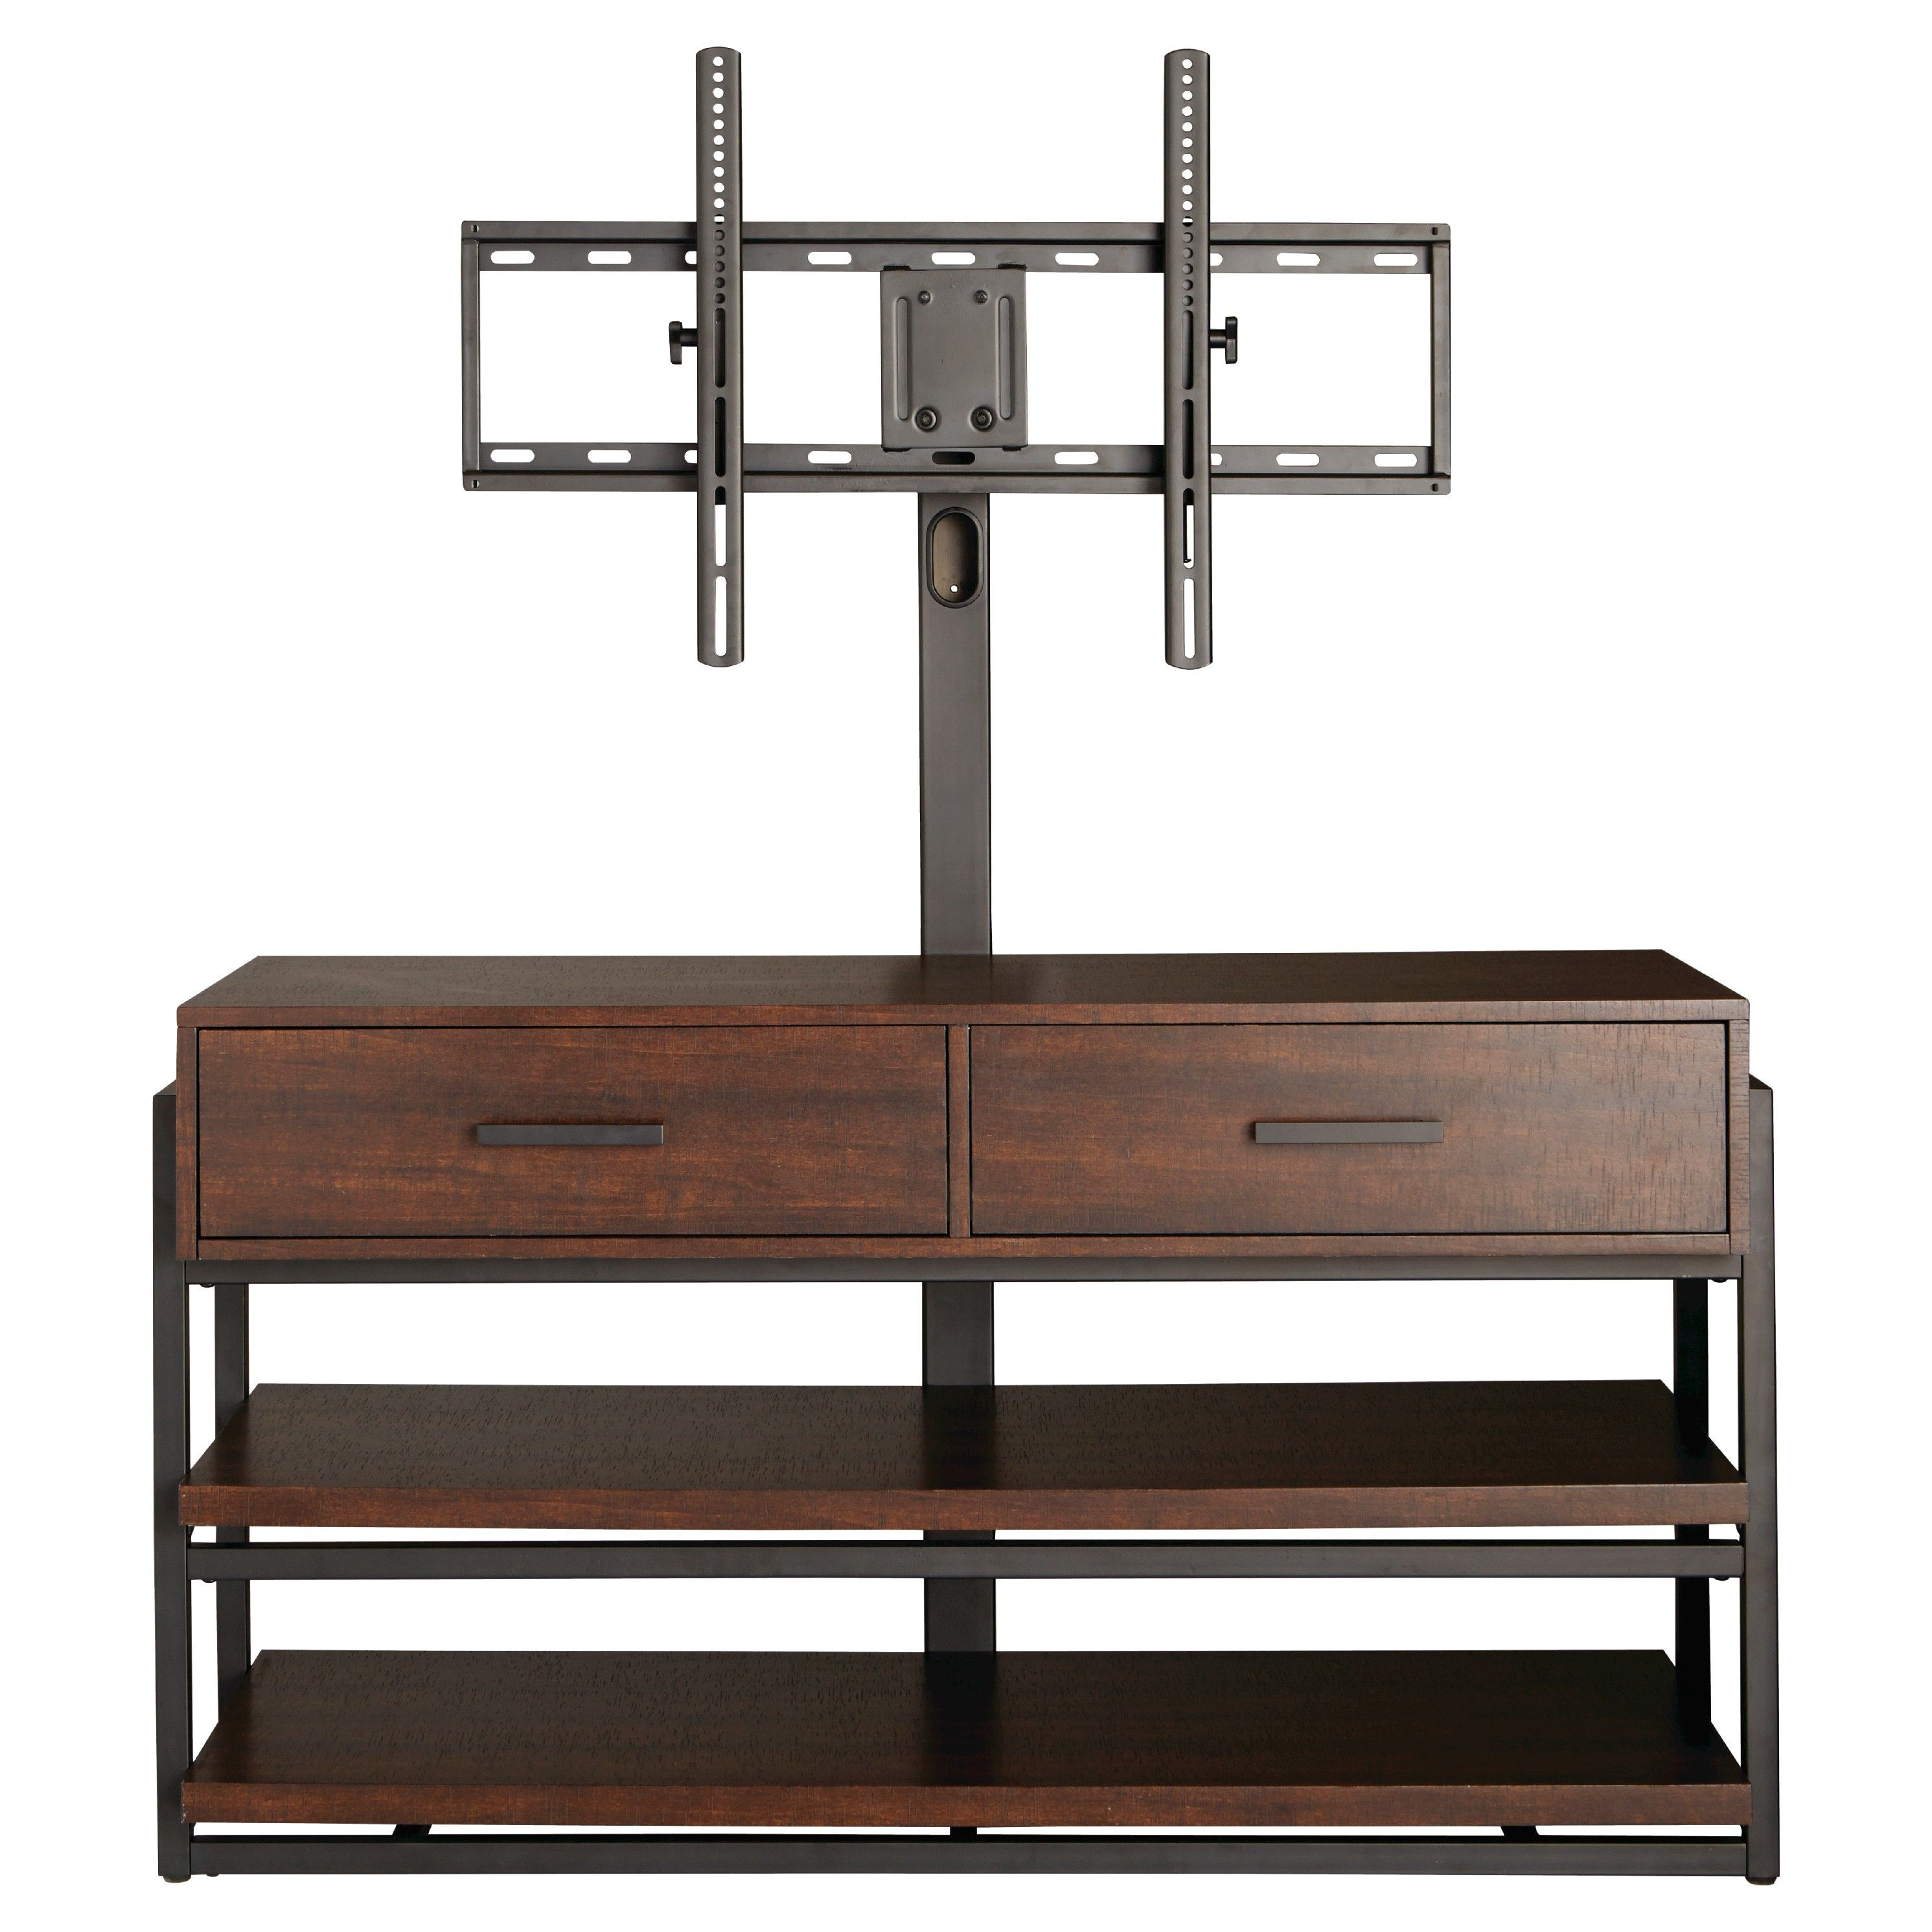 Threshold Mixed Material 3n1 Tv Stand Tv Stand Brown Swivel Tv Stand Tv Stand With Mount